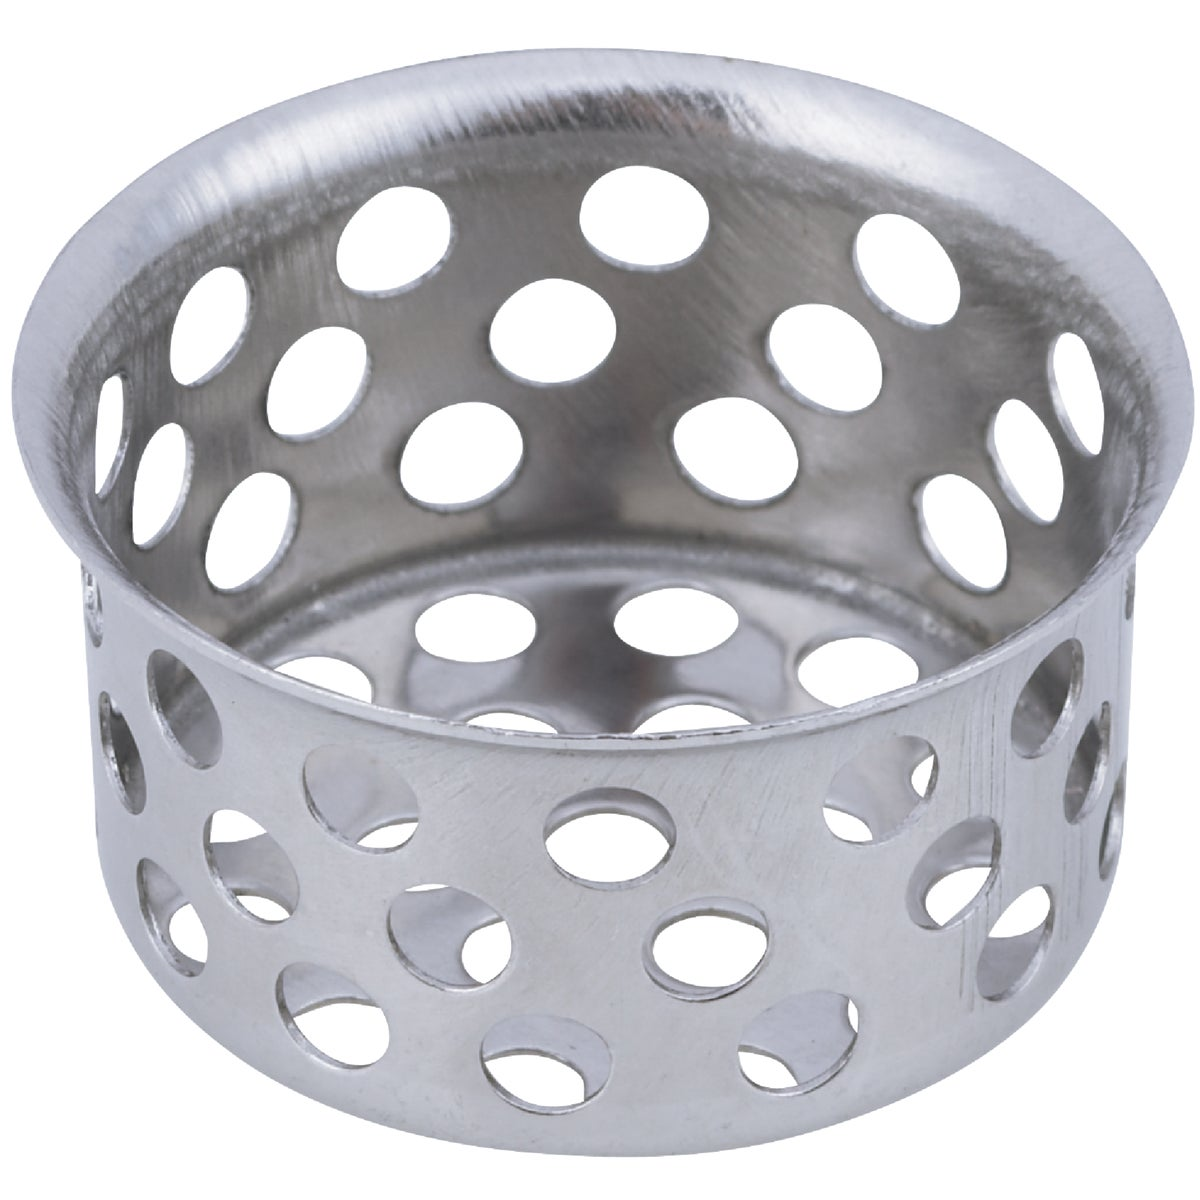 "1-1/2"" STRAINER CUP - 415535 by Do it Best"